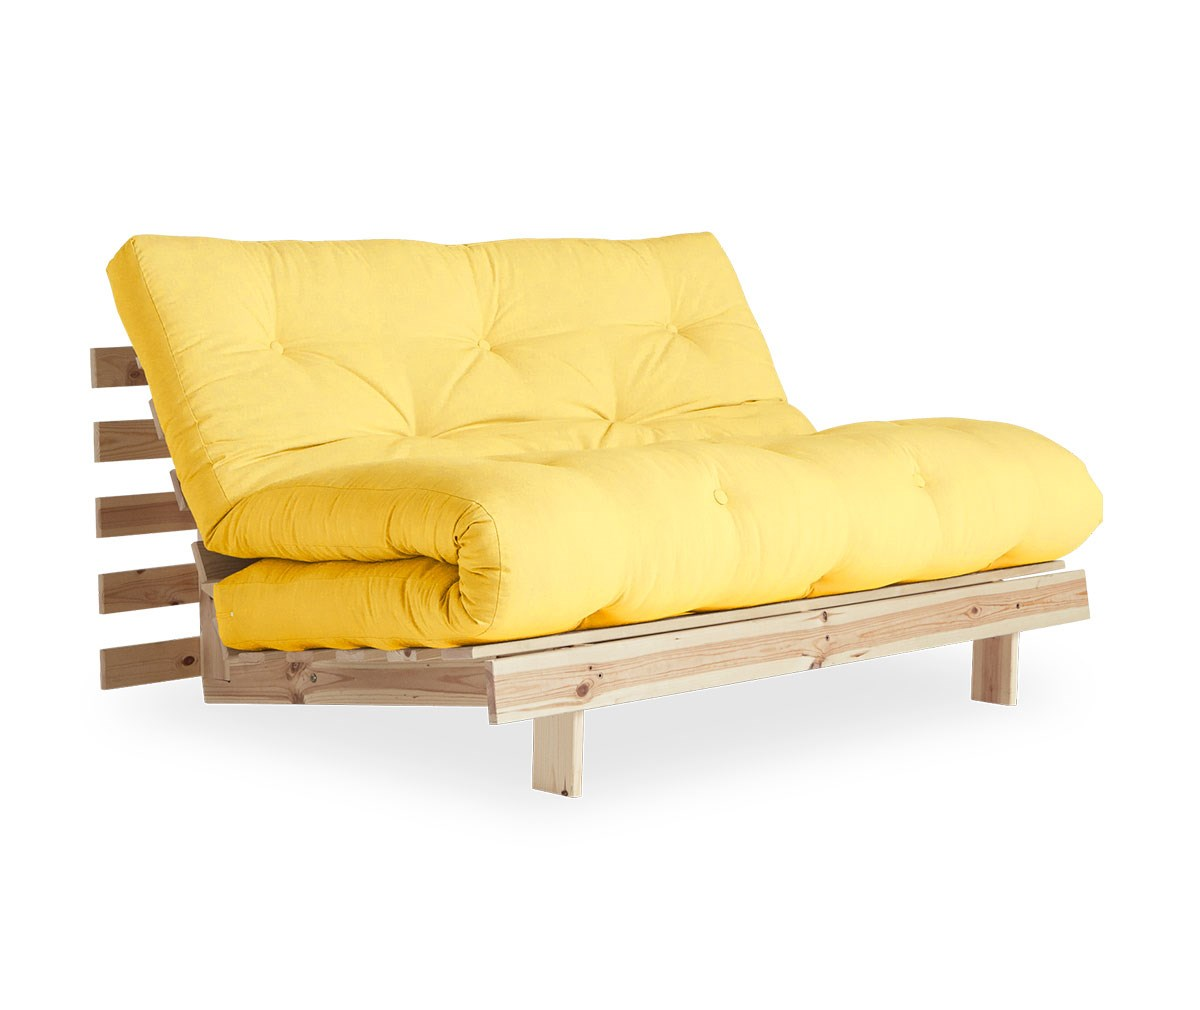 Karup Design Roots-futonsohva yellow/mänty, L 140 cm